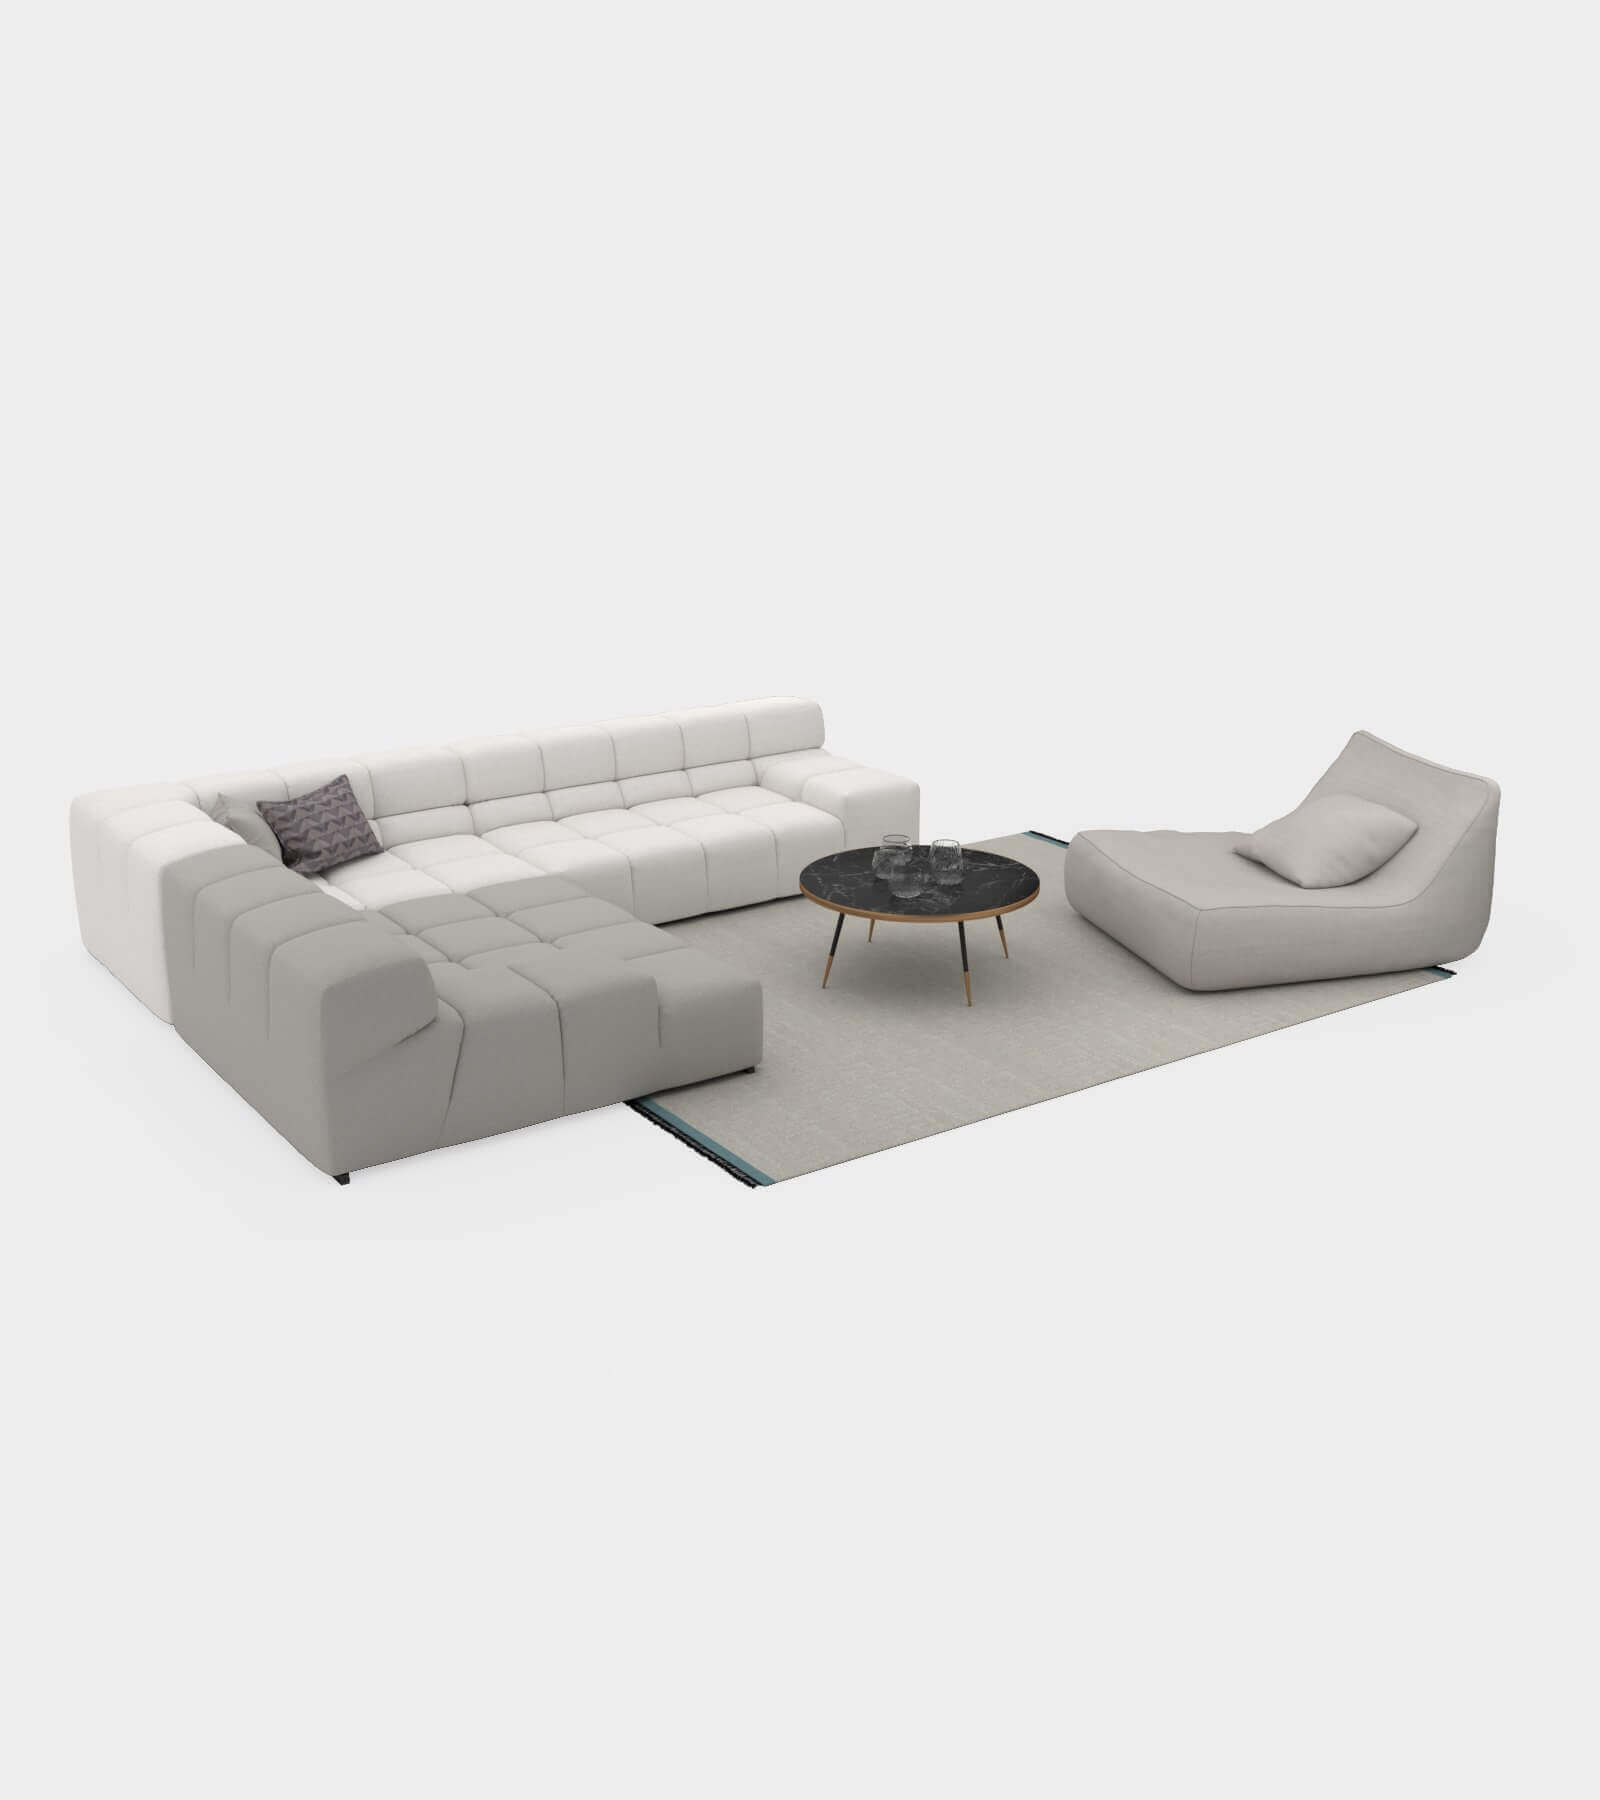 Living room couch set-2-1-1 3 D Model